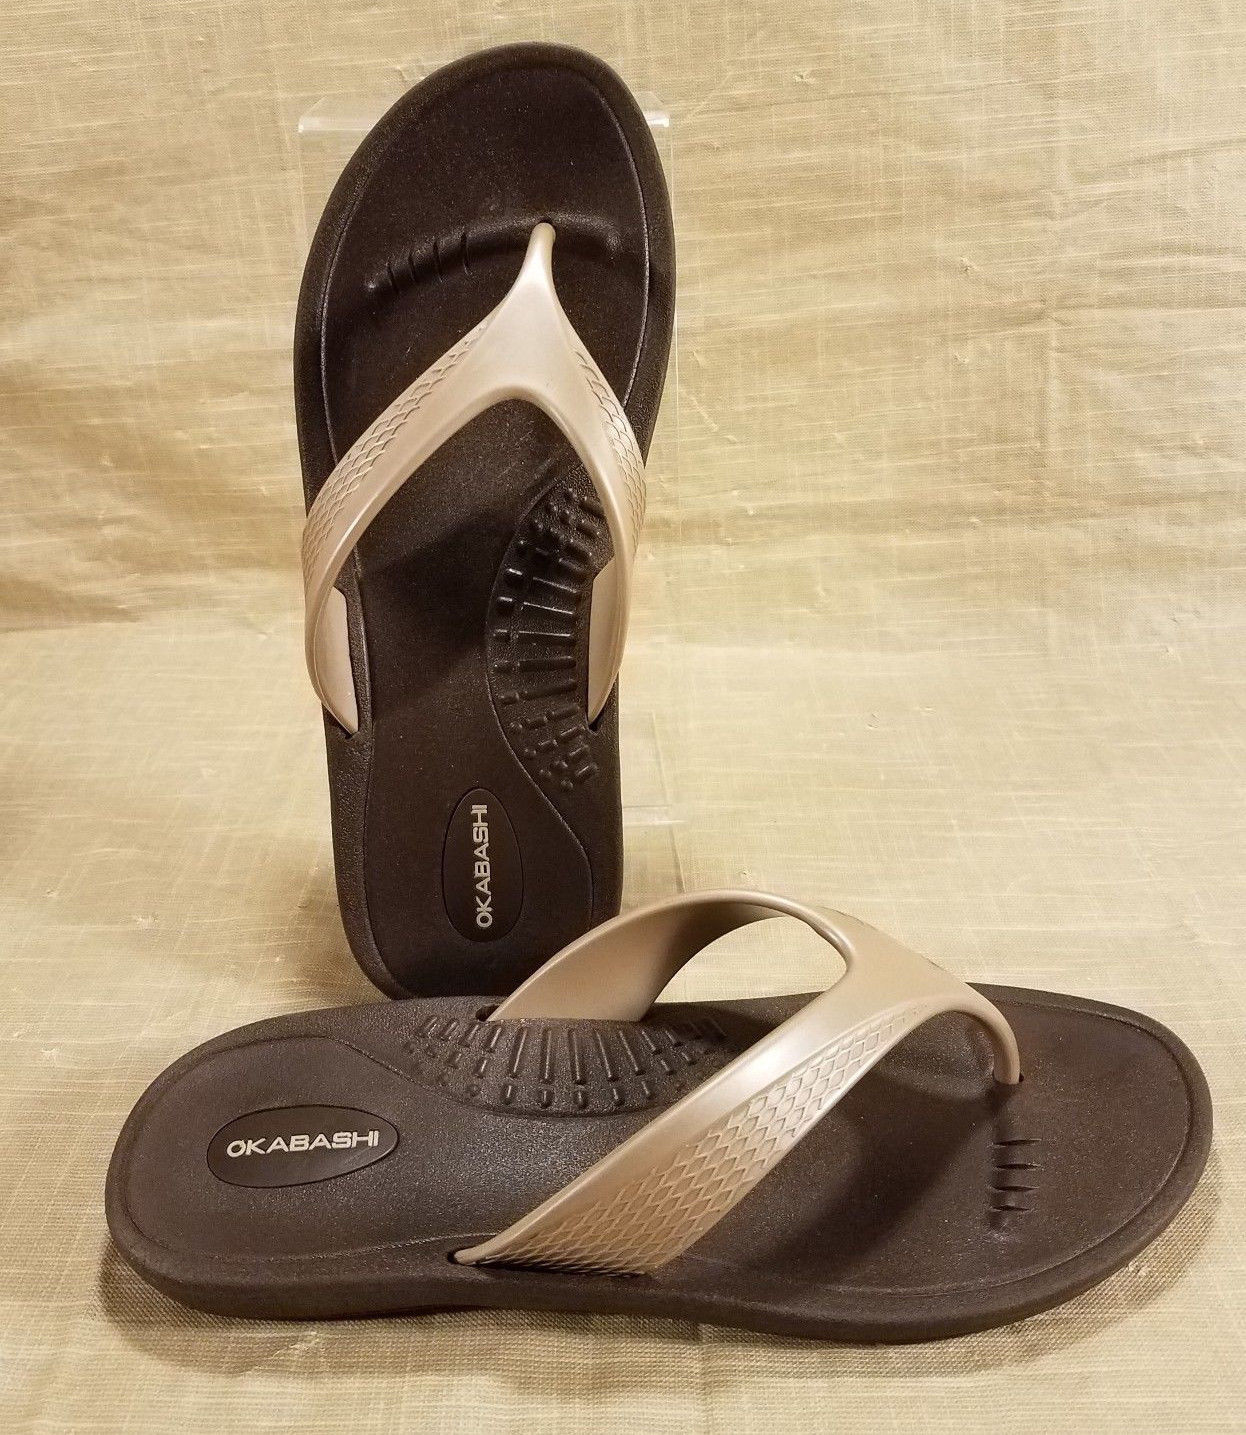 Okabashi Marina Flip Flops Thong Sandals Womens Size ML 8-9 Brown Gold Made USA